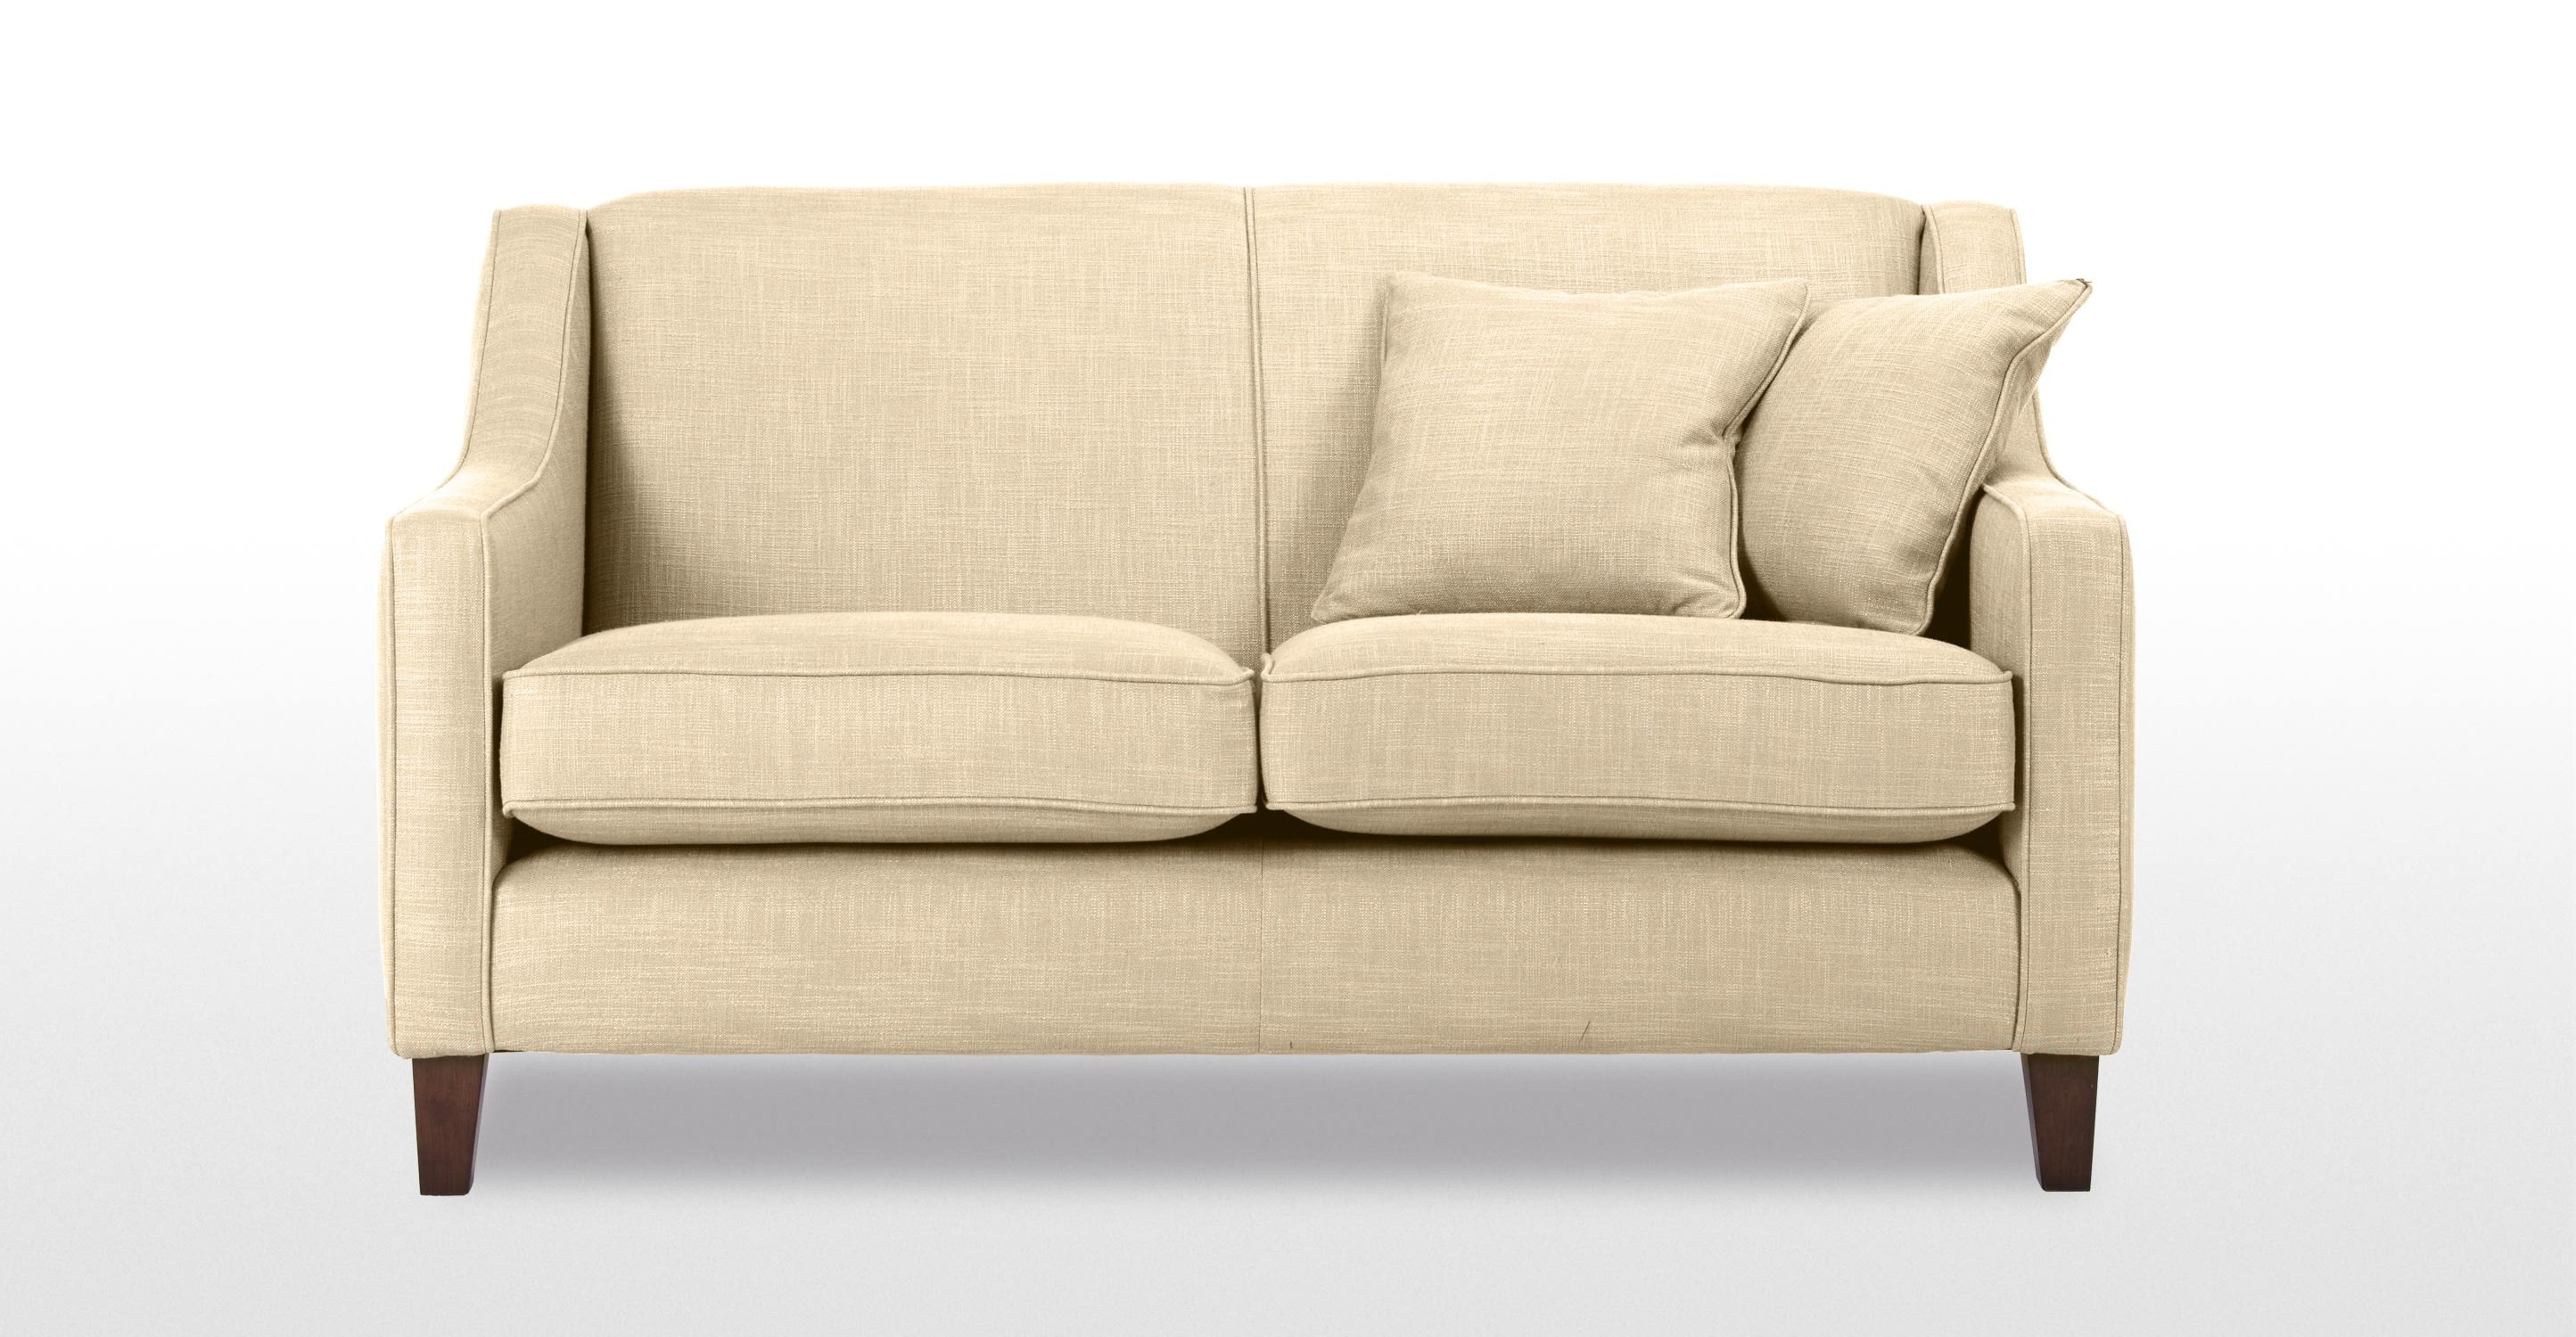 Halston 2 Seater Sofa In Cream Made With Two Seater Chairs (Image 7 of 15)